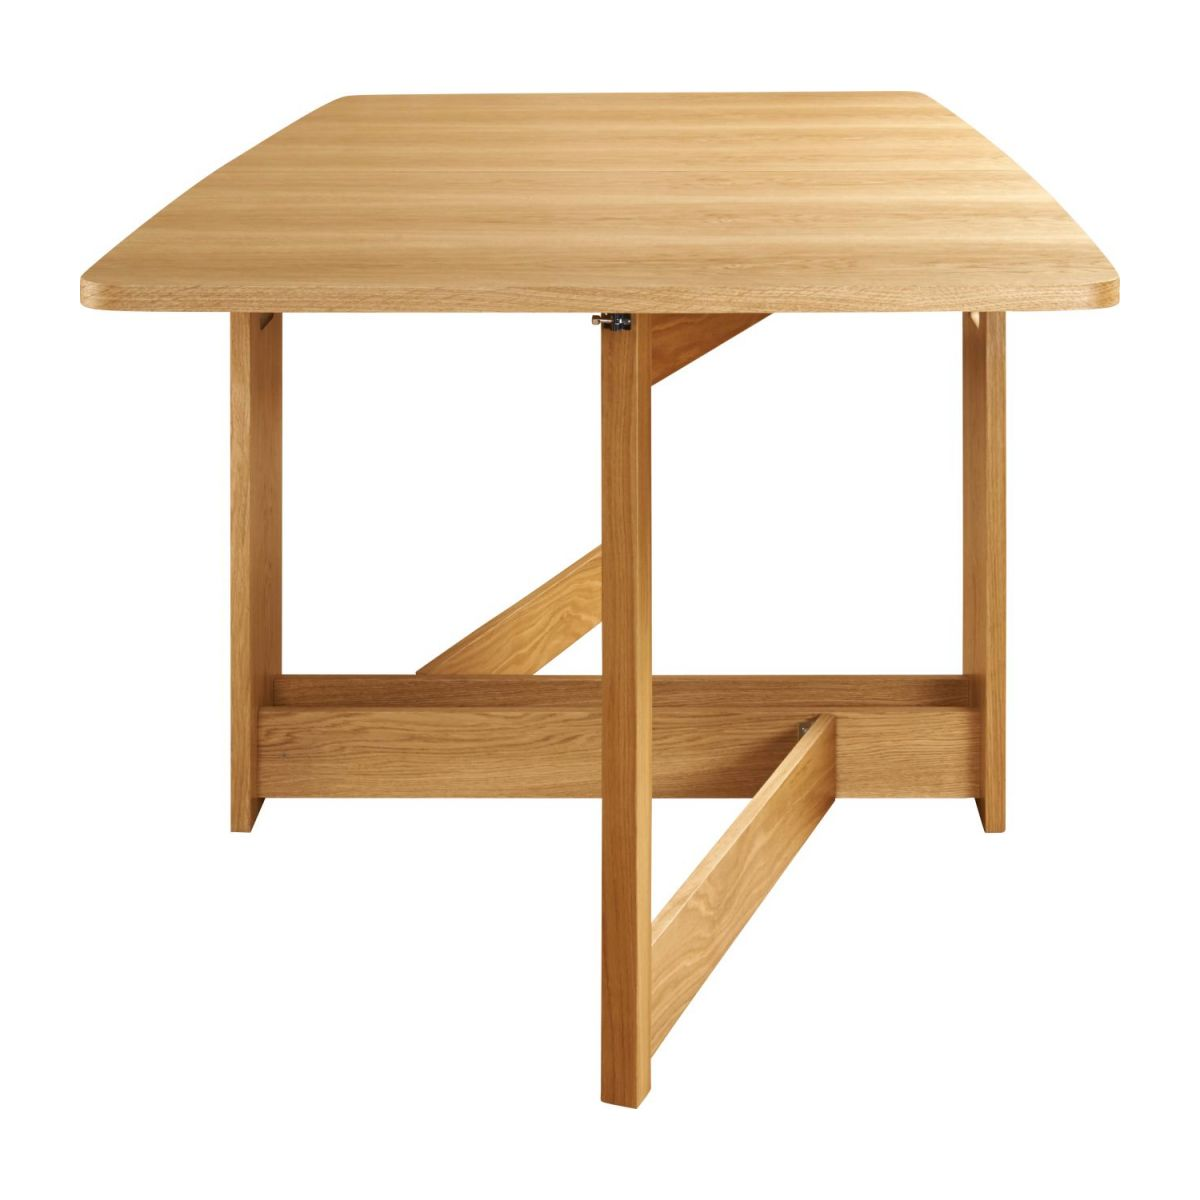 Table en chêne modulable n°18